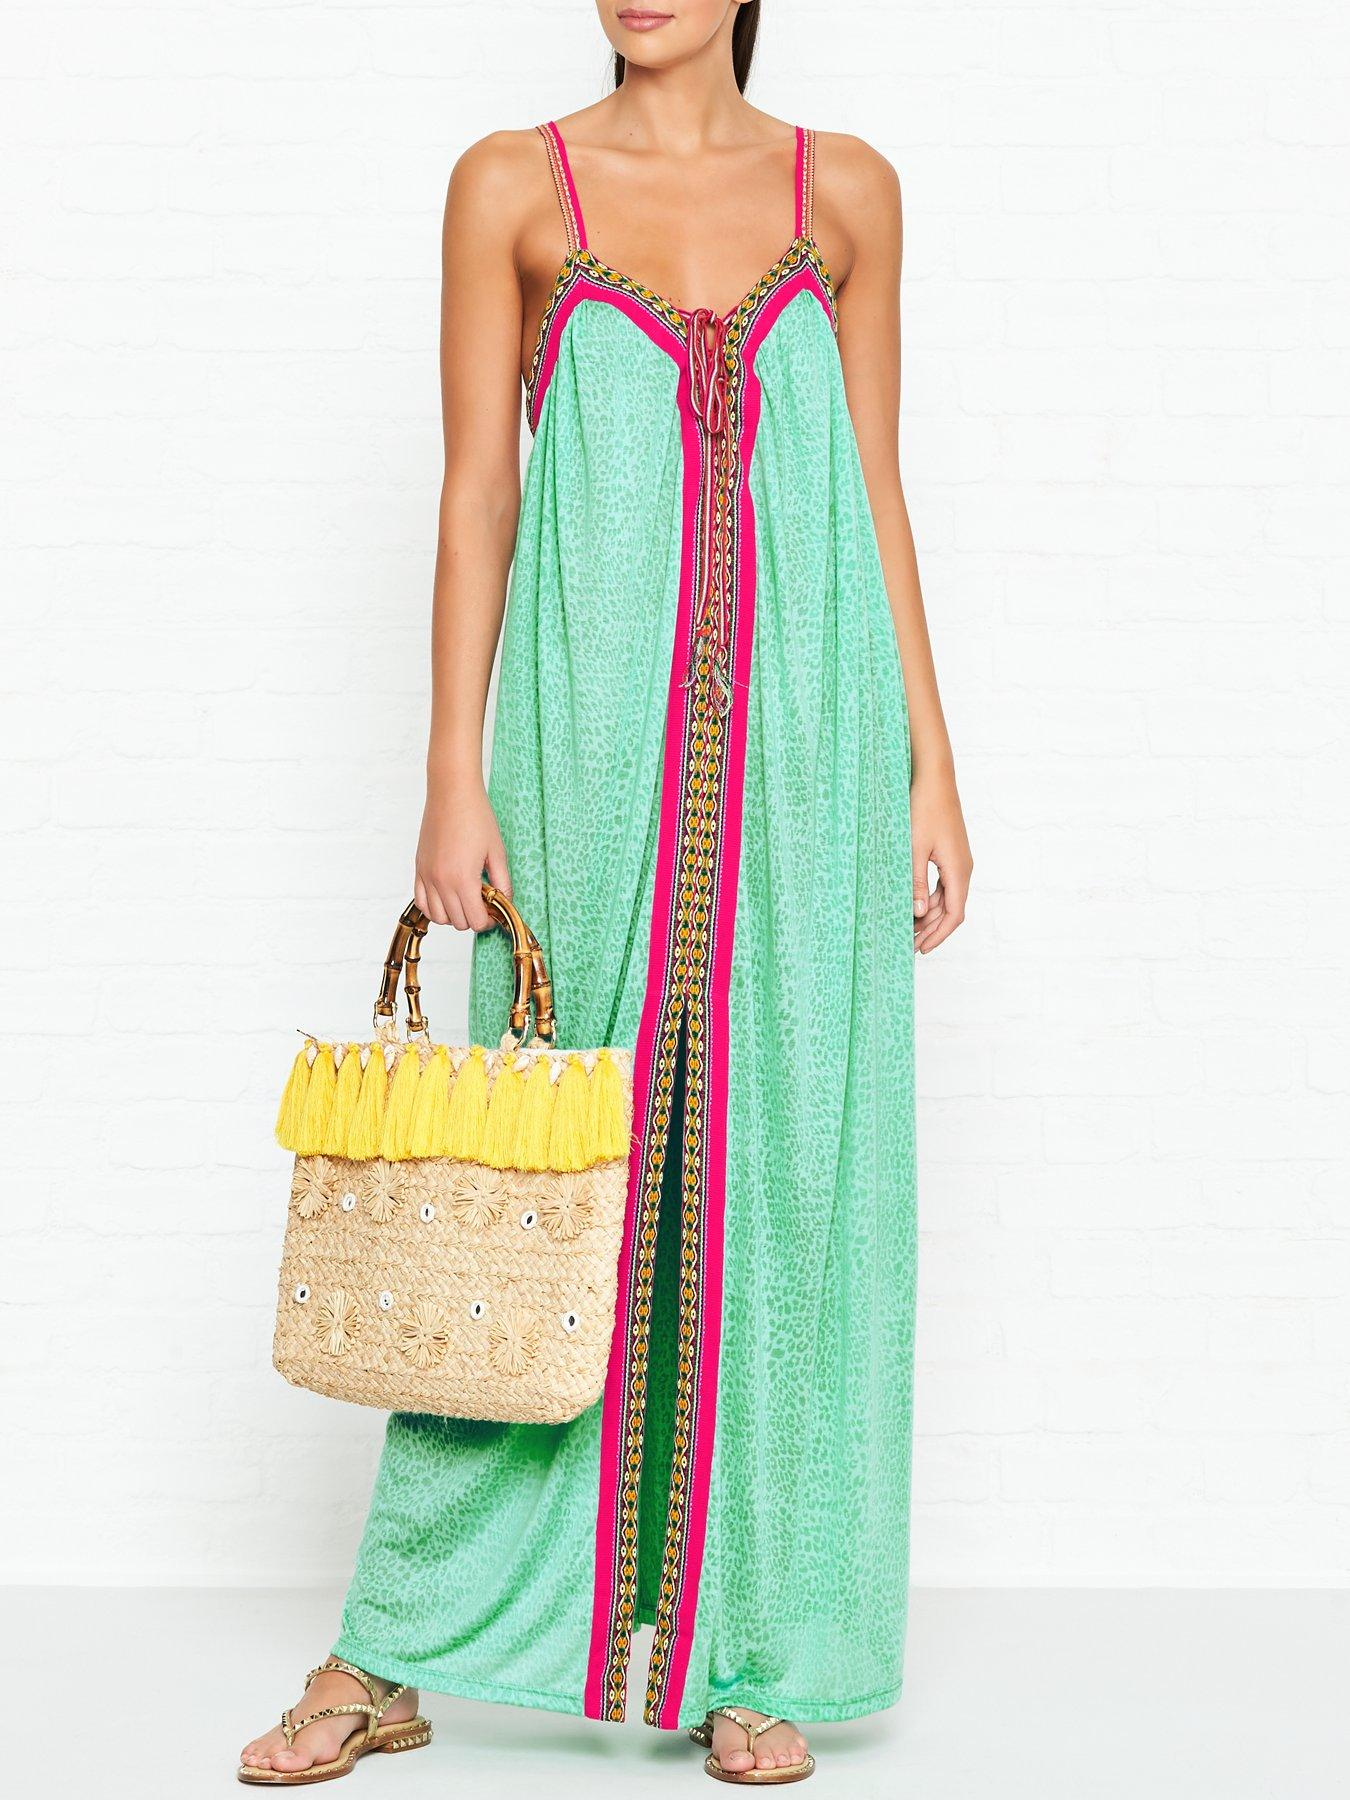 PITUSA Goddess Cheetah Print Maxi Mint Dress